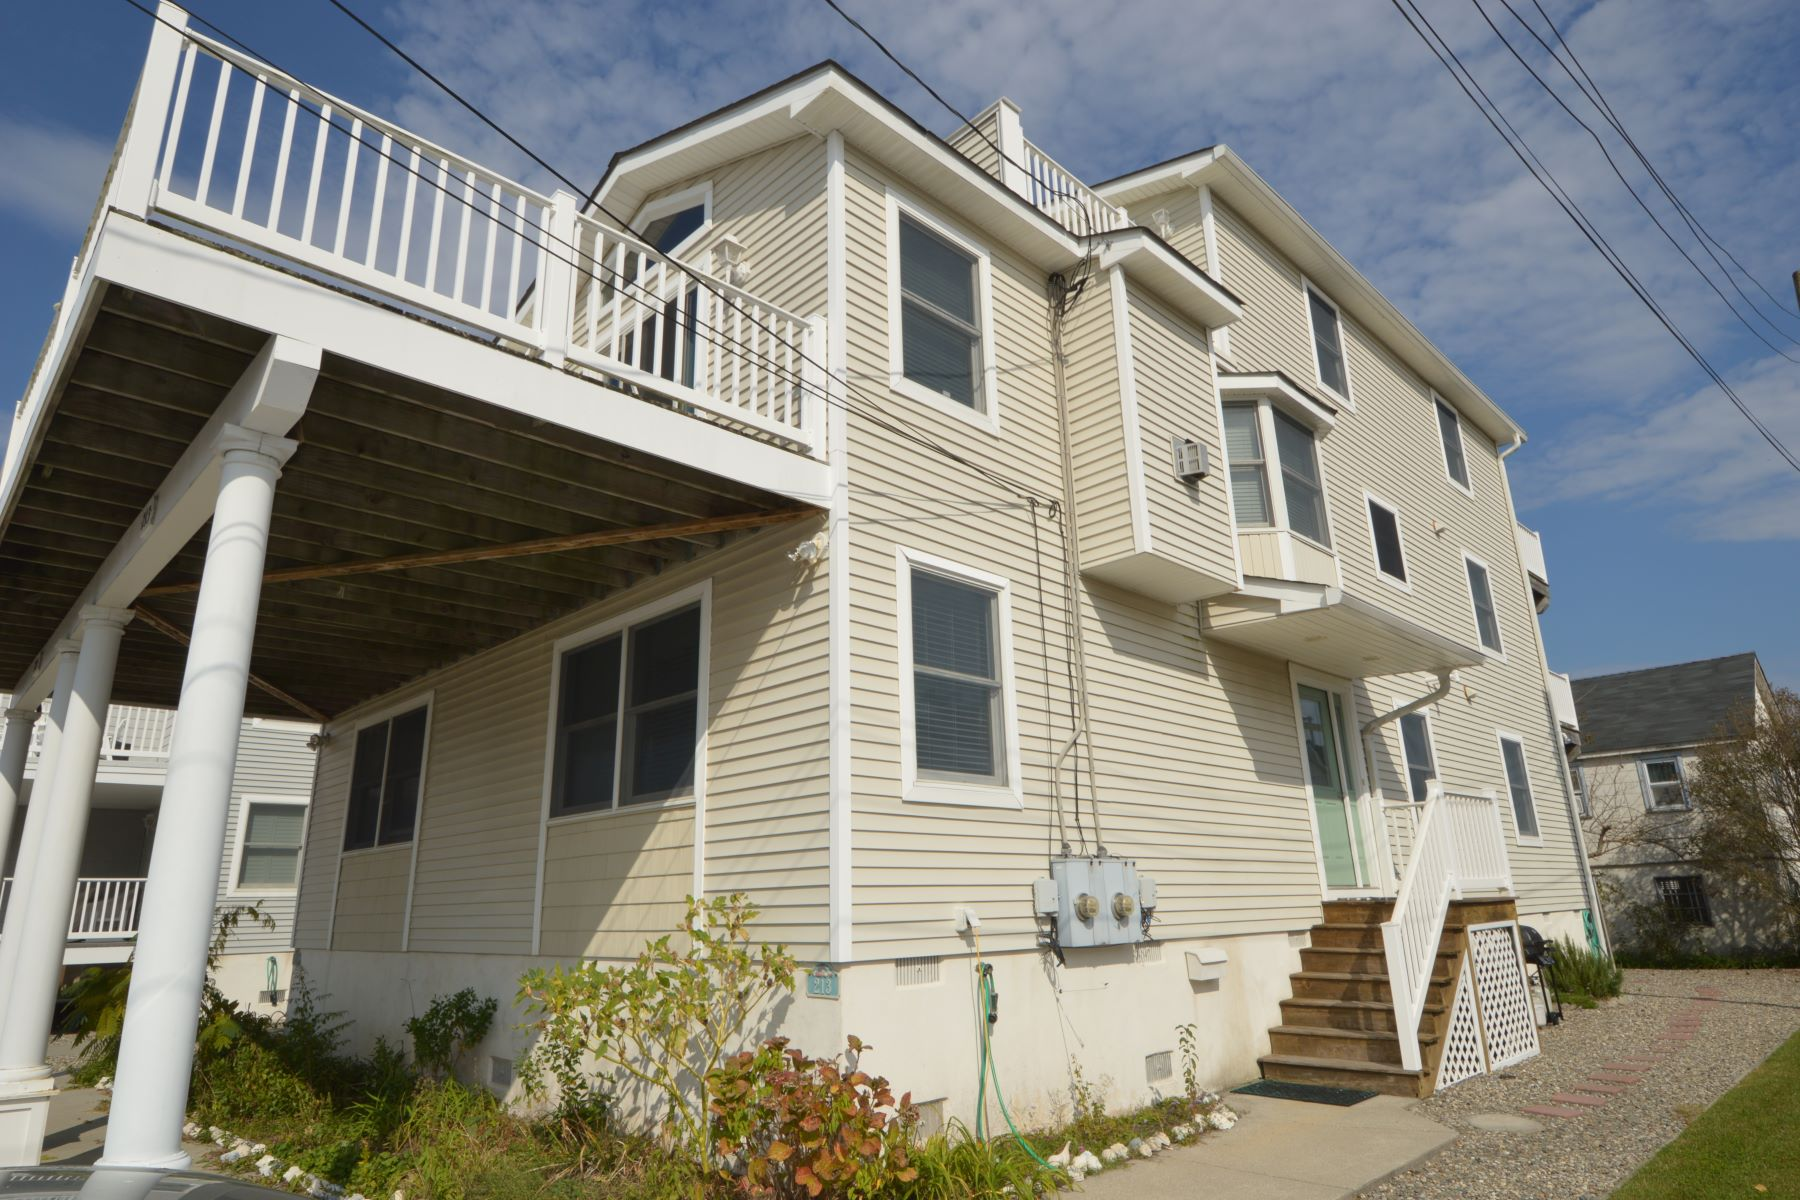 Duplex for Rent at Expansive Beach Townhouse 213 34th Street, Avalon, New Jersey 08202 United States